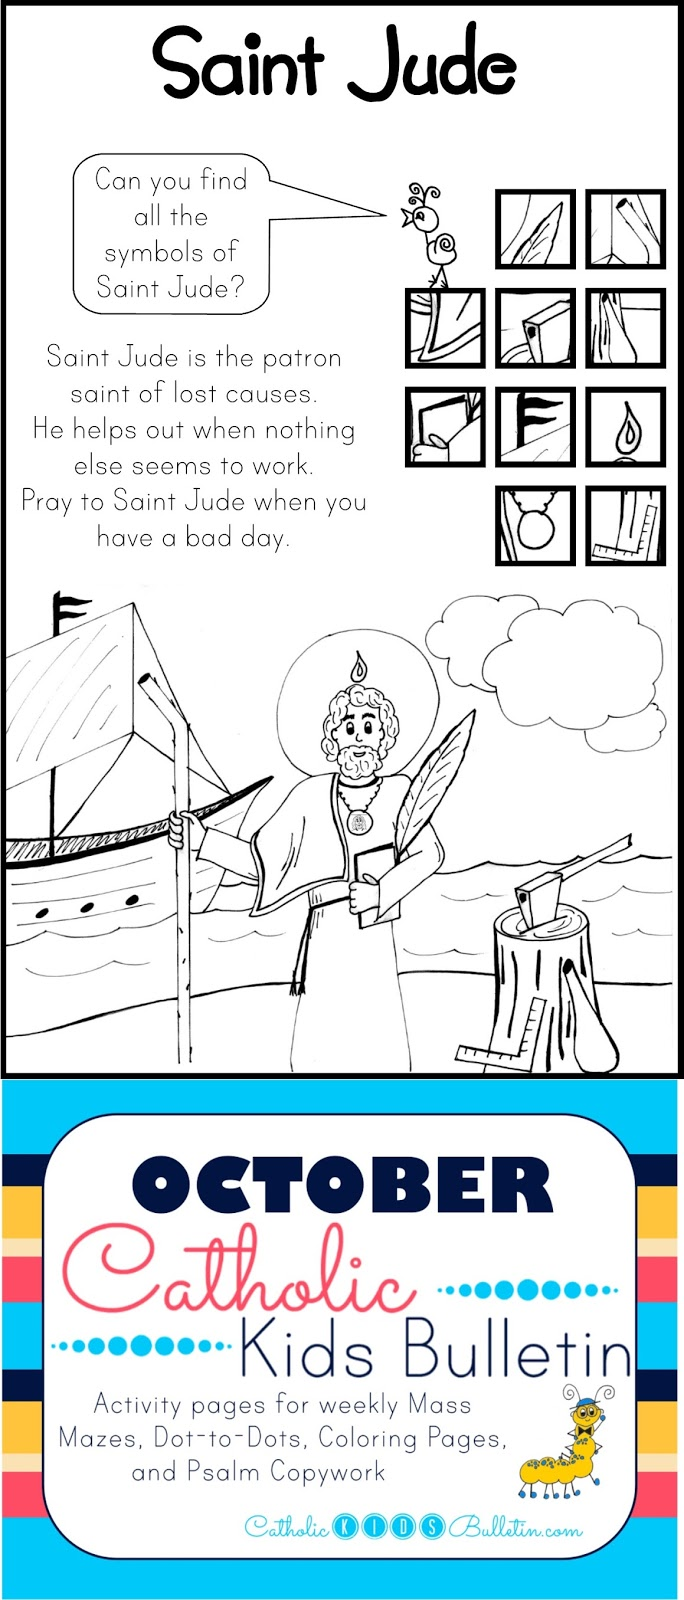 Catholic Kids October Catholic Kids Bulletin St Jude Coloring Page